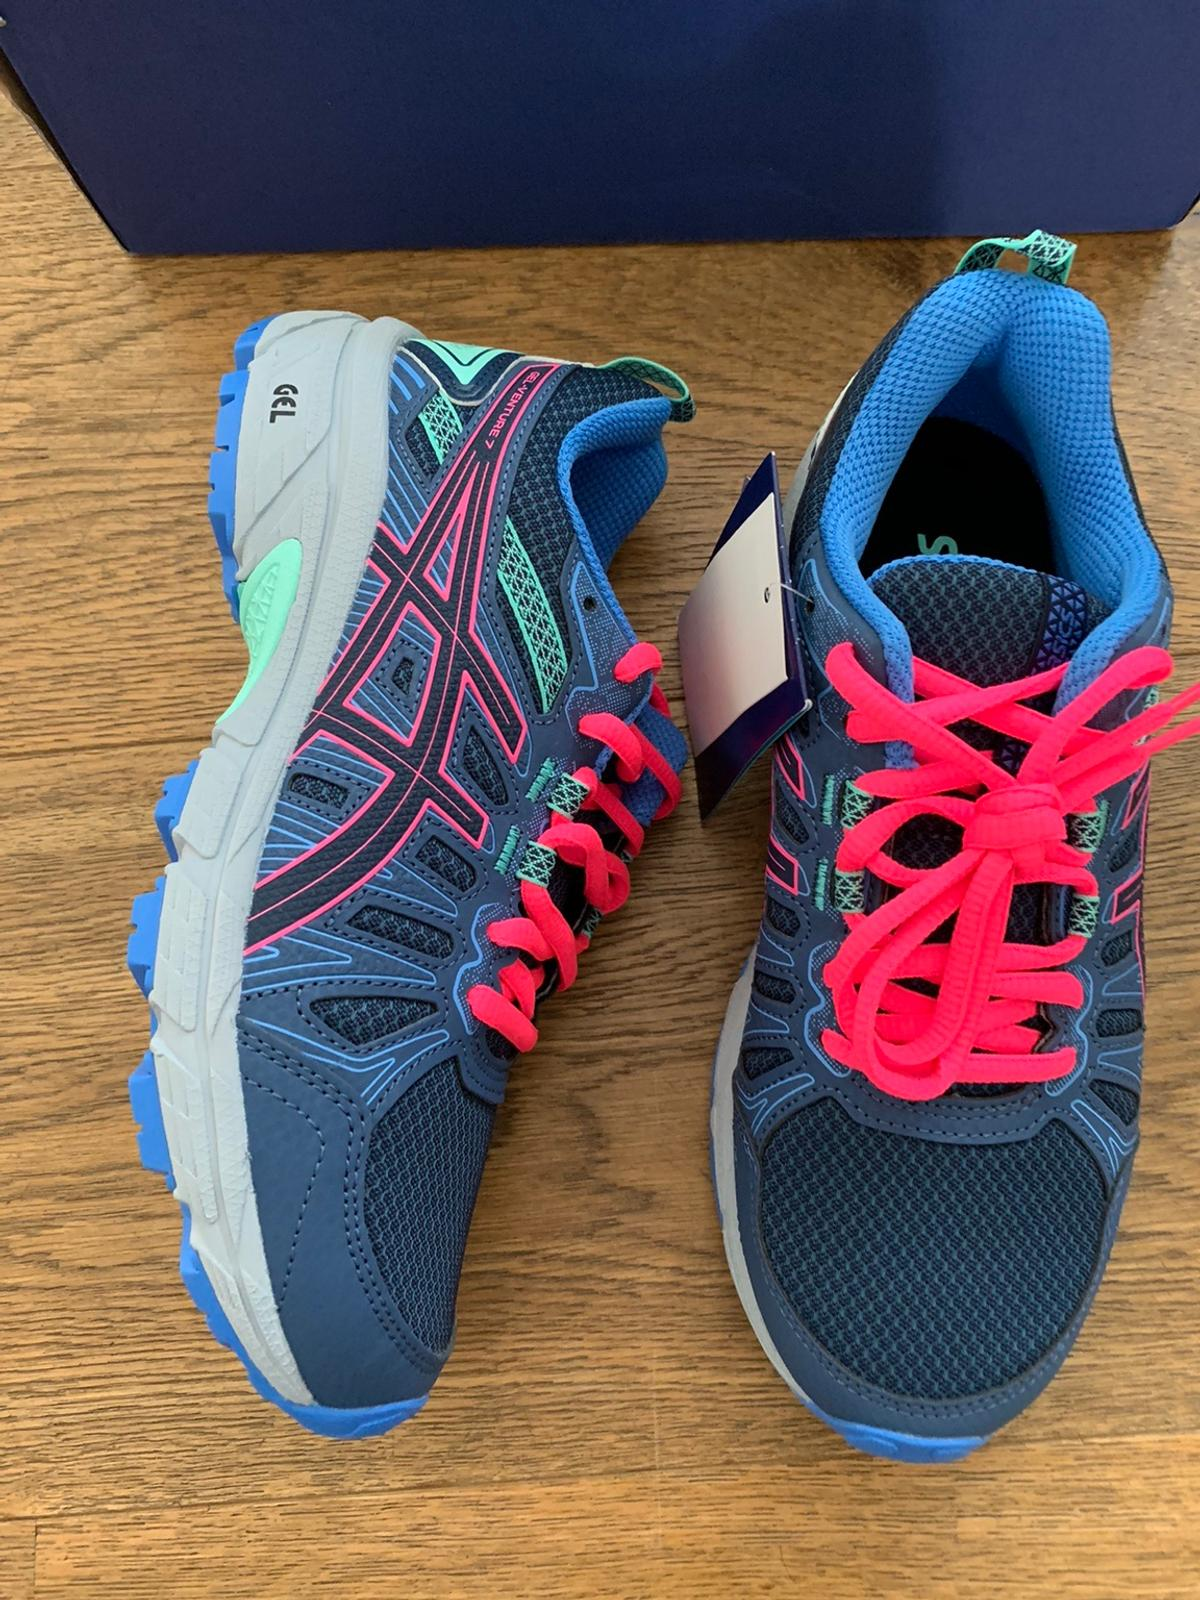 asics running shoes size 3 Cheaper Than Retail Price> Buy Clothing ...